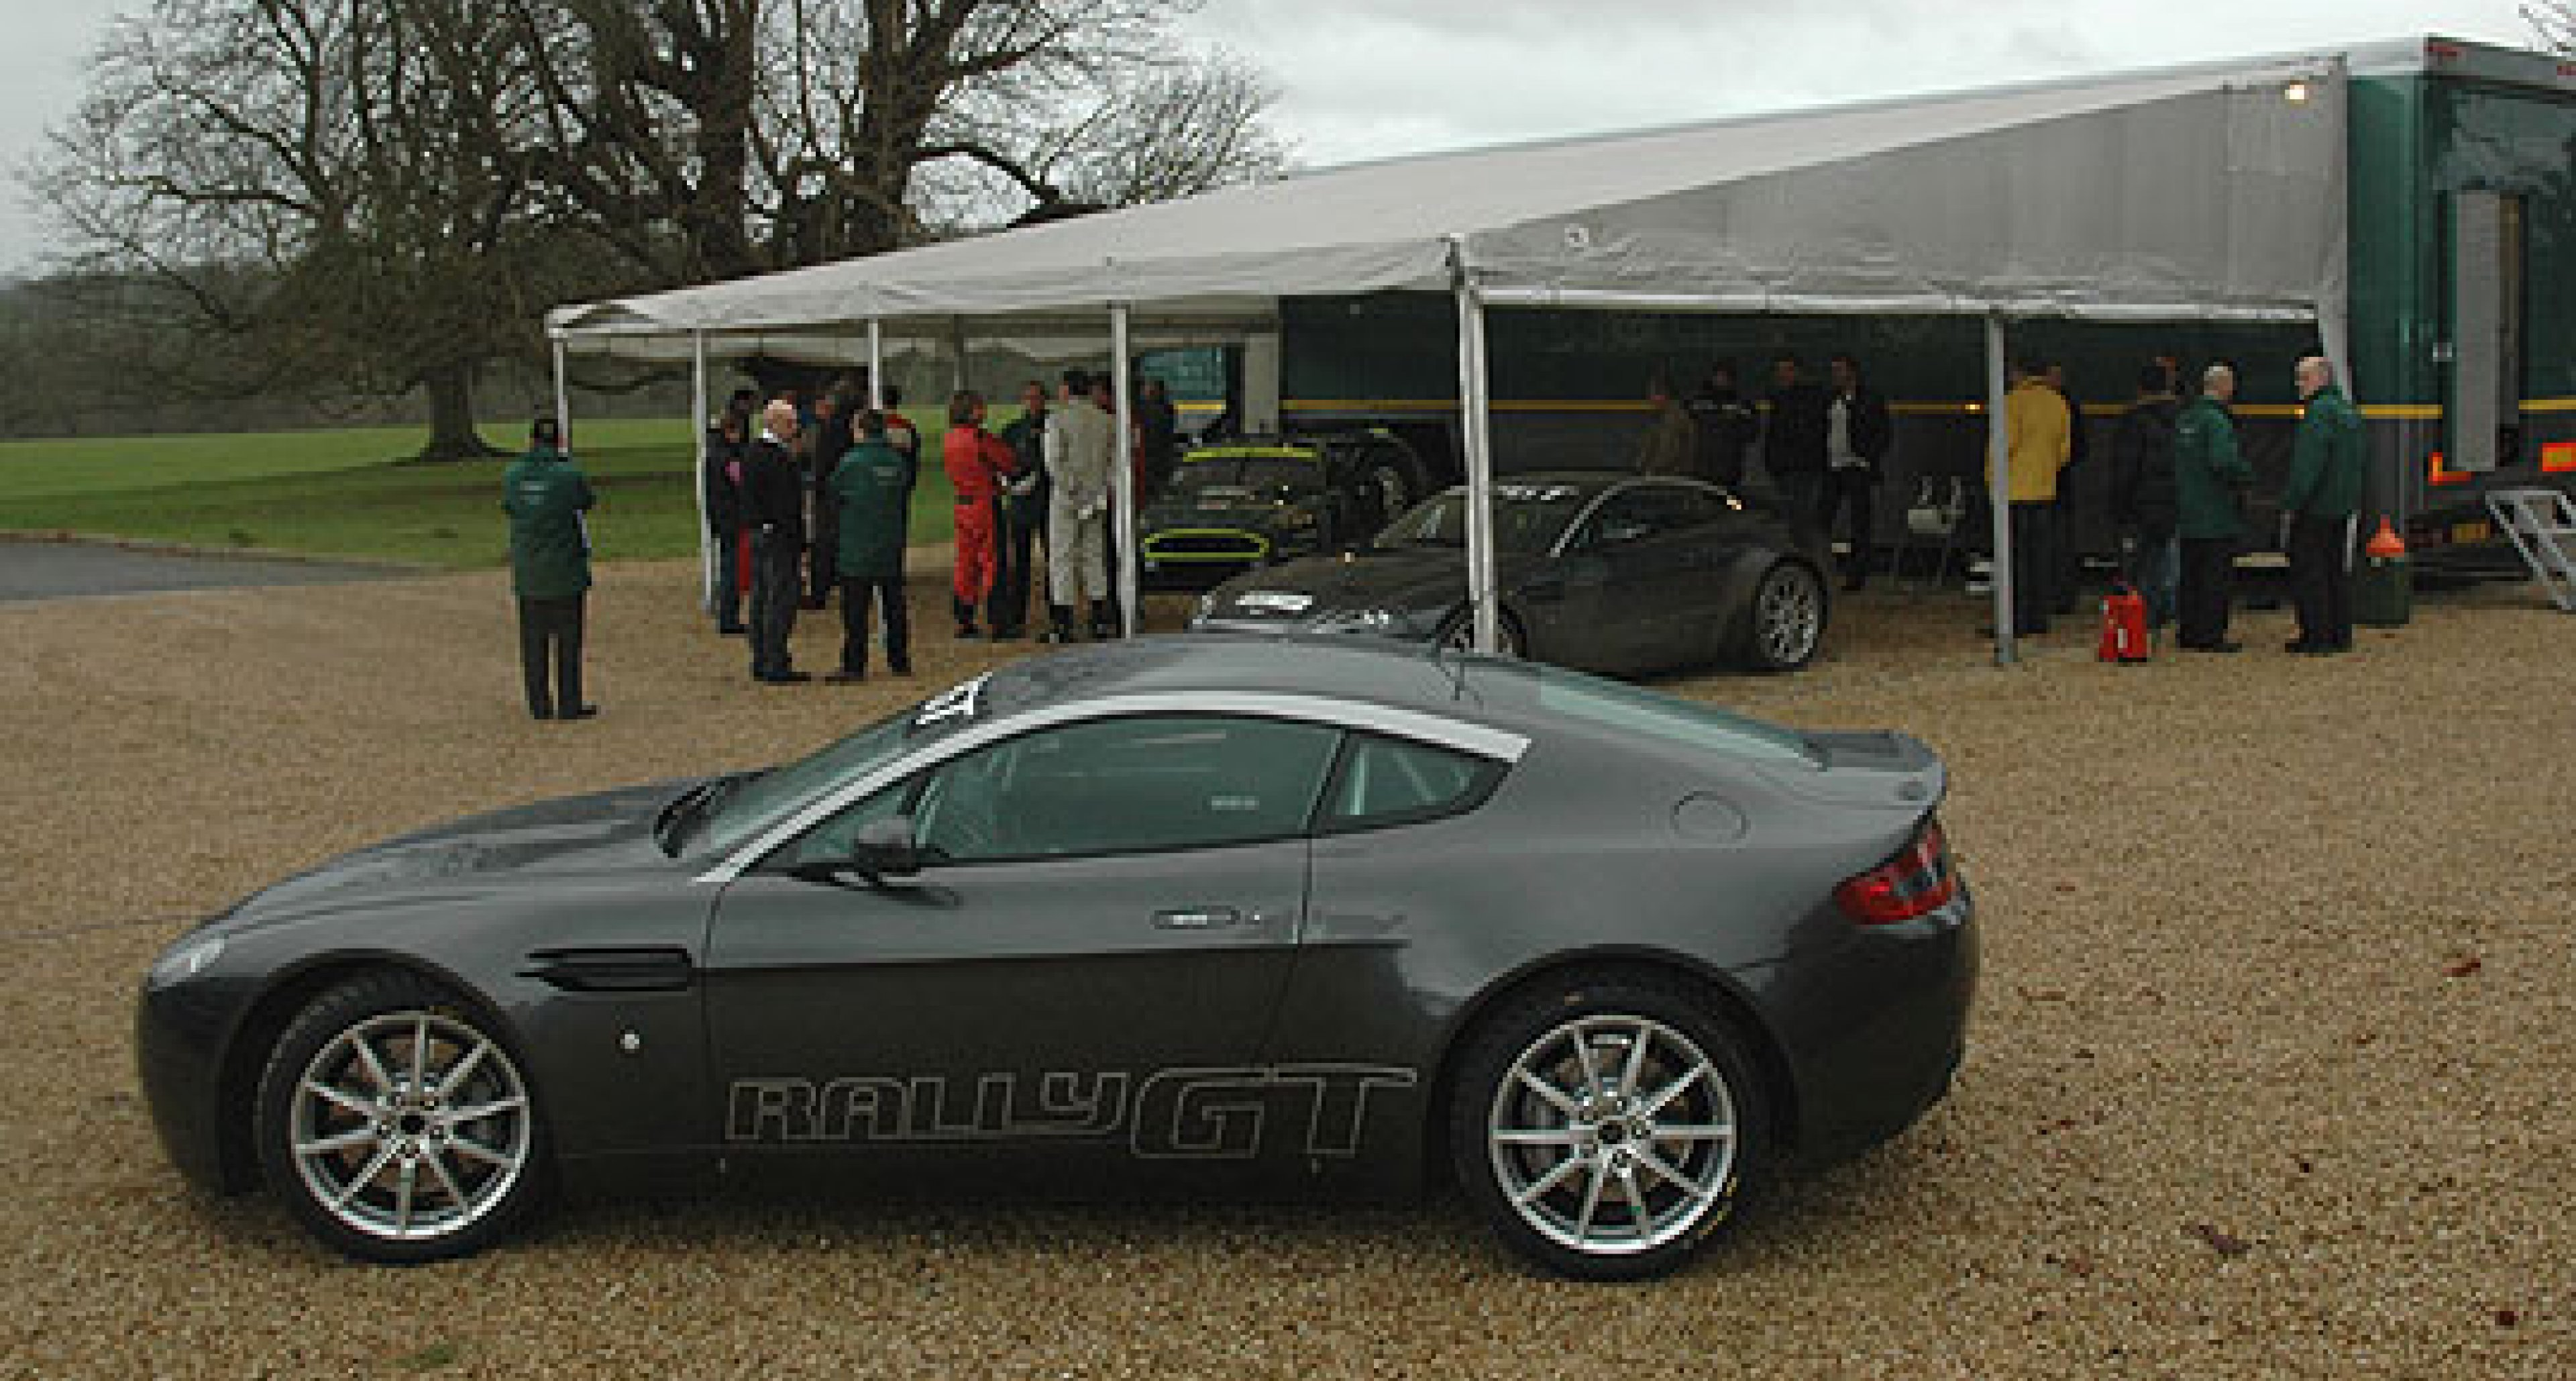 The Aston Martin  Rally GT  put through its paces